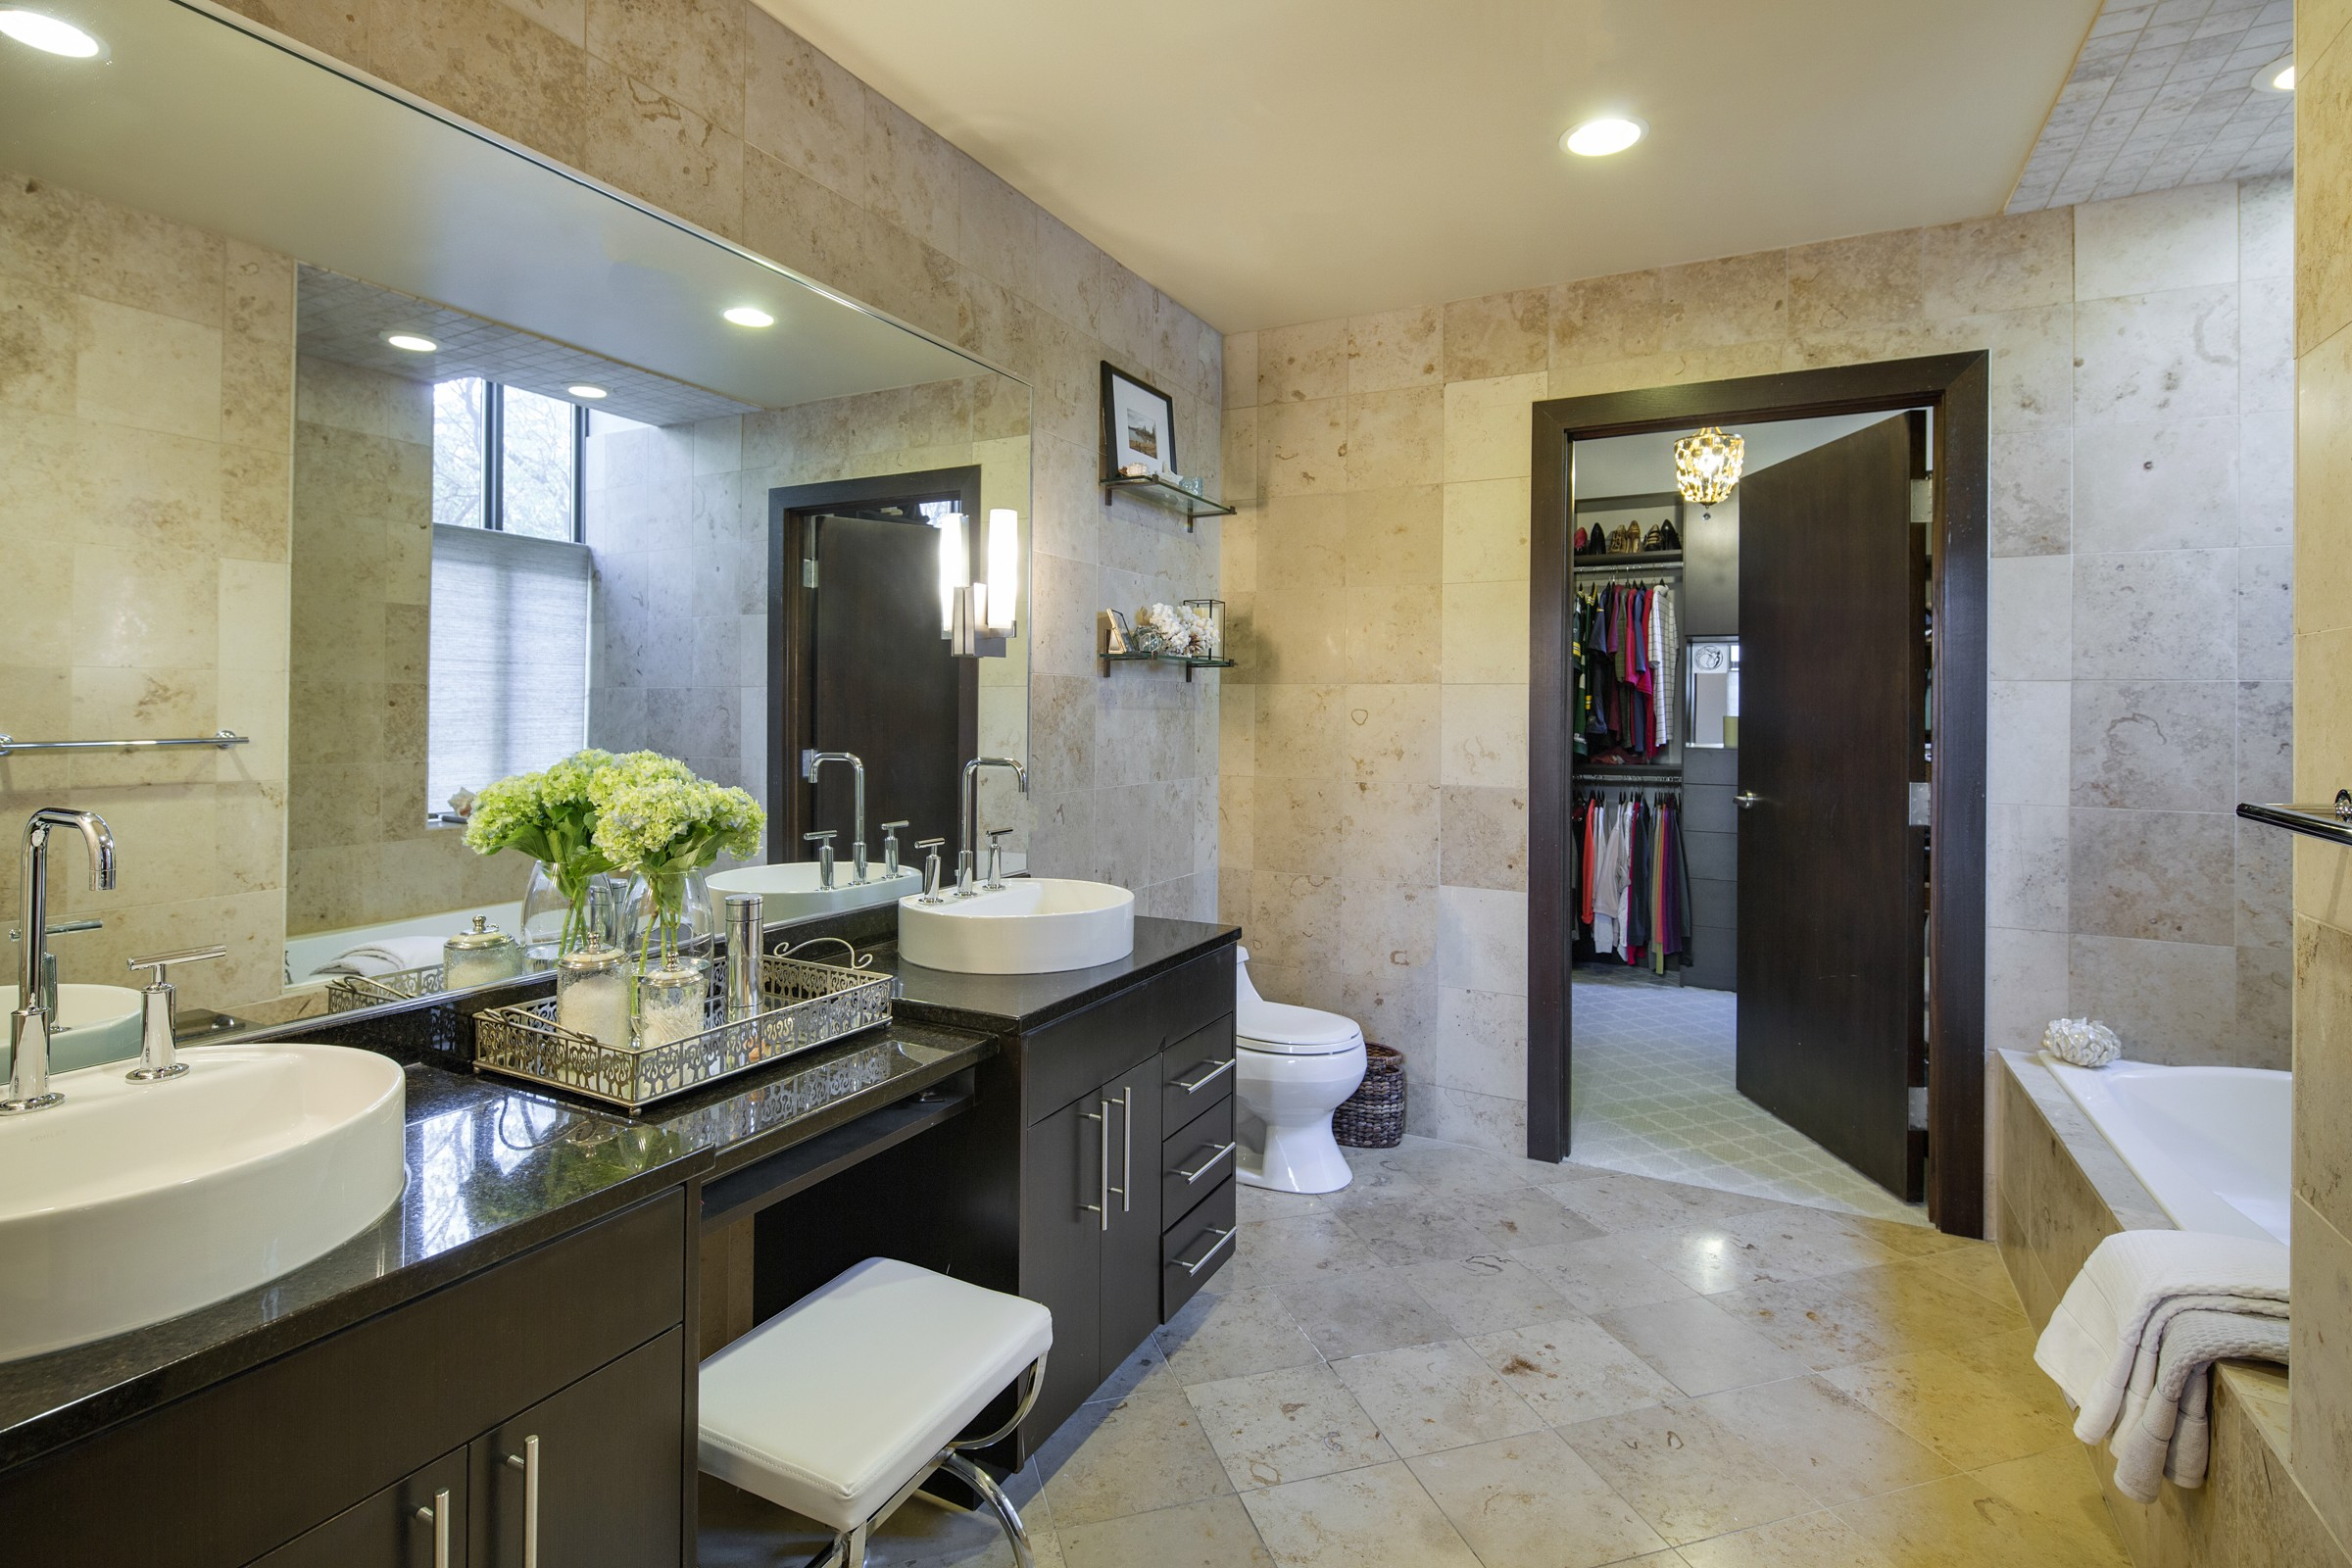 Houzz Tour. Minneapolis Interior Designer